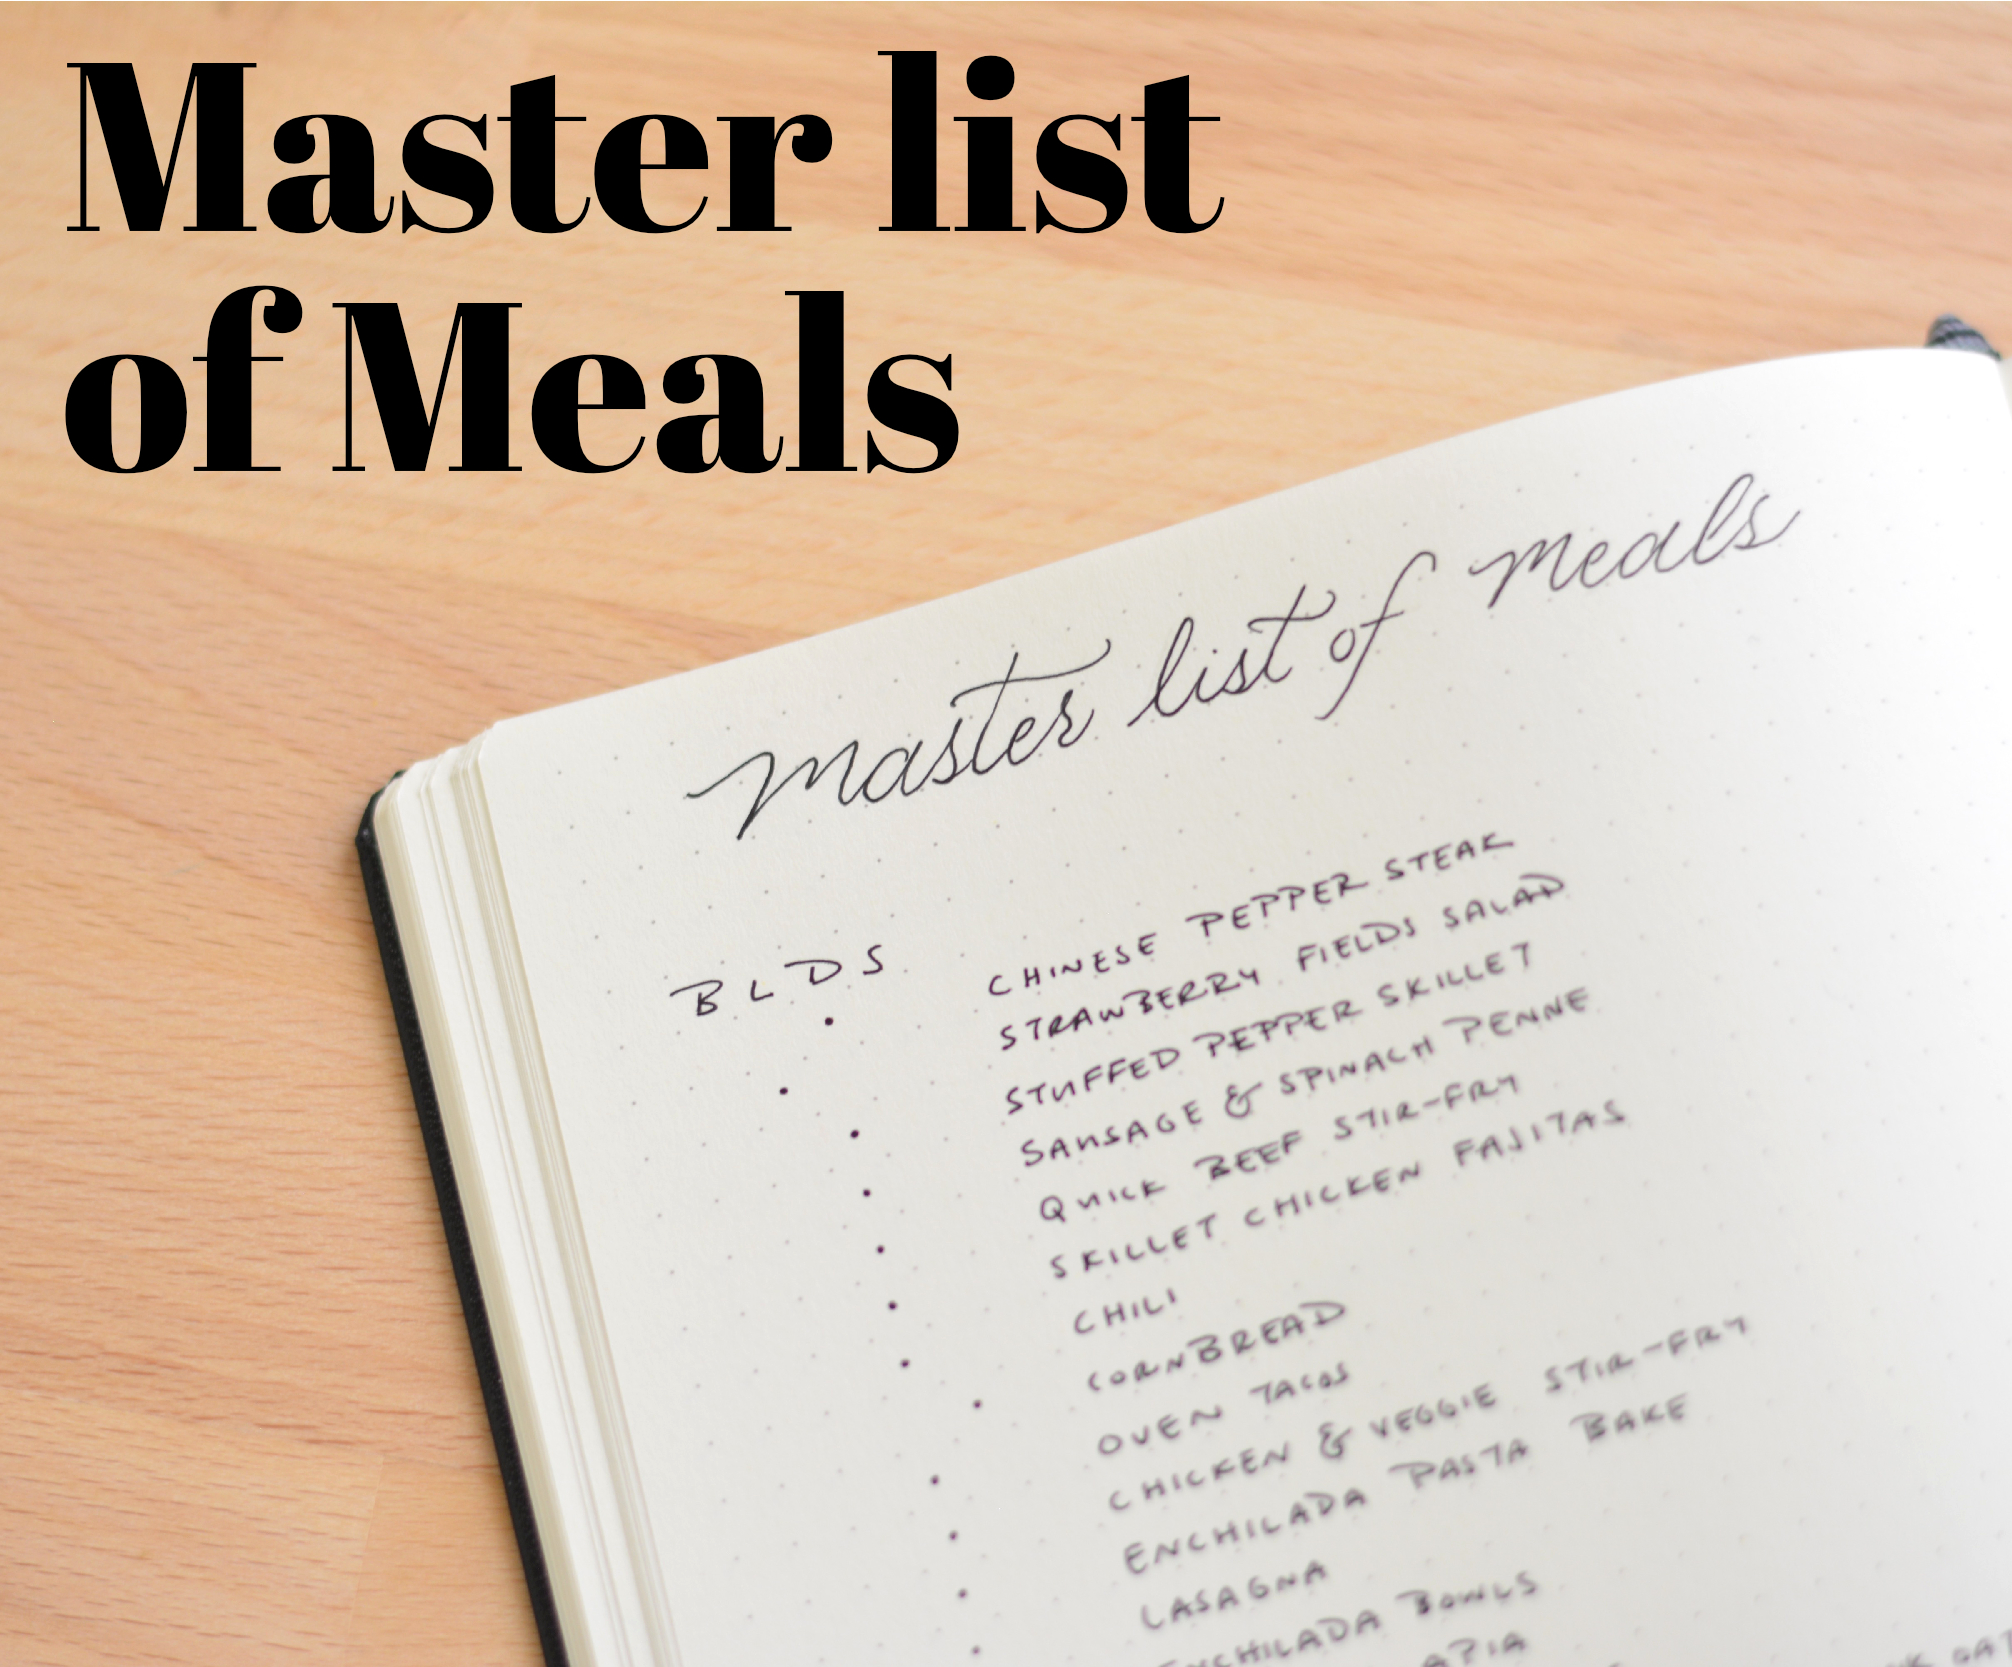 Master list of meals